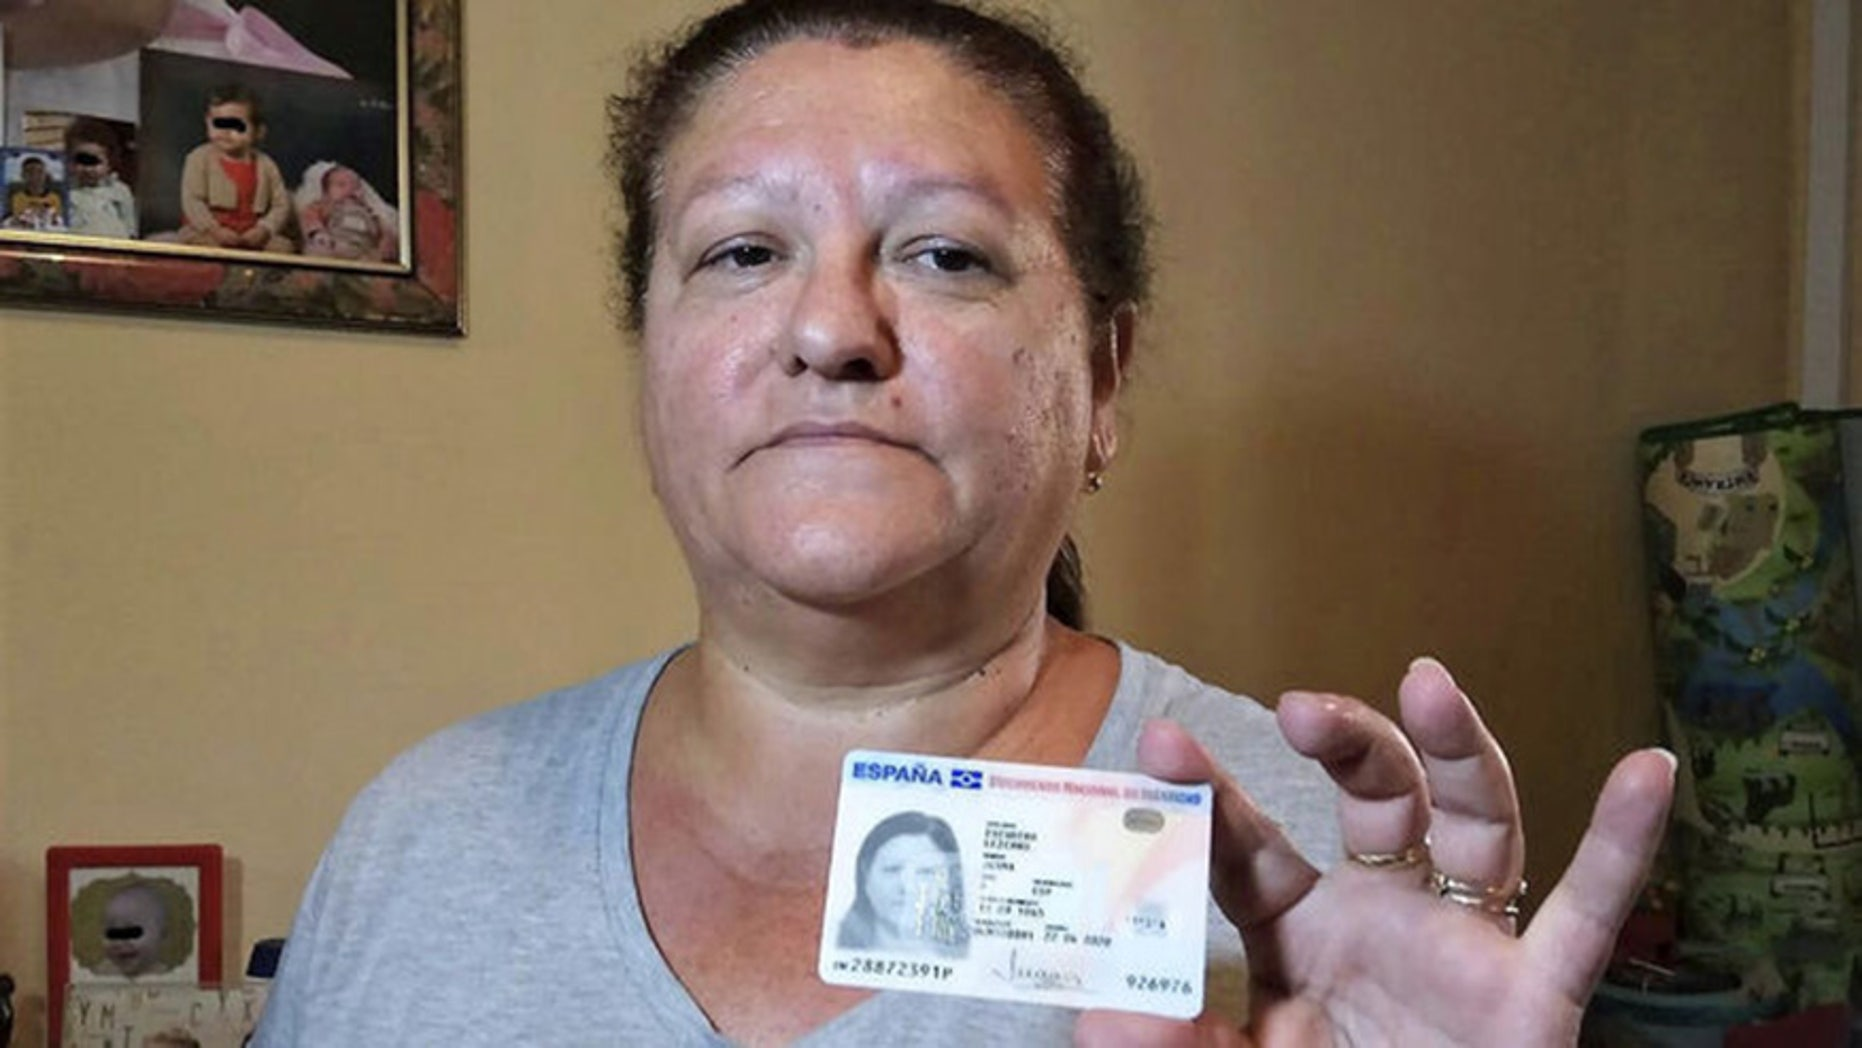 Juana Escudero, holding up her ID card, has a petition for a grave in Malaga, Spain be opened to prove that she is in fact alive.